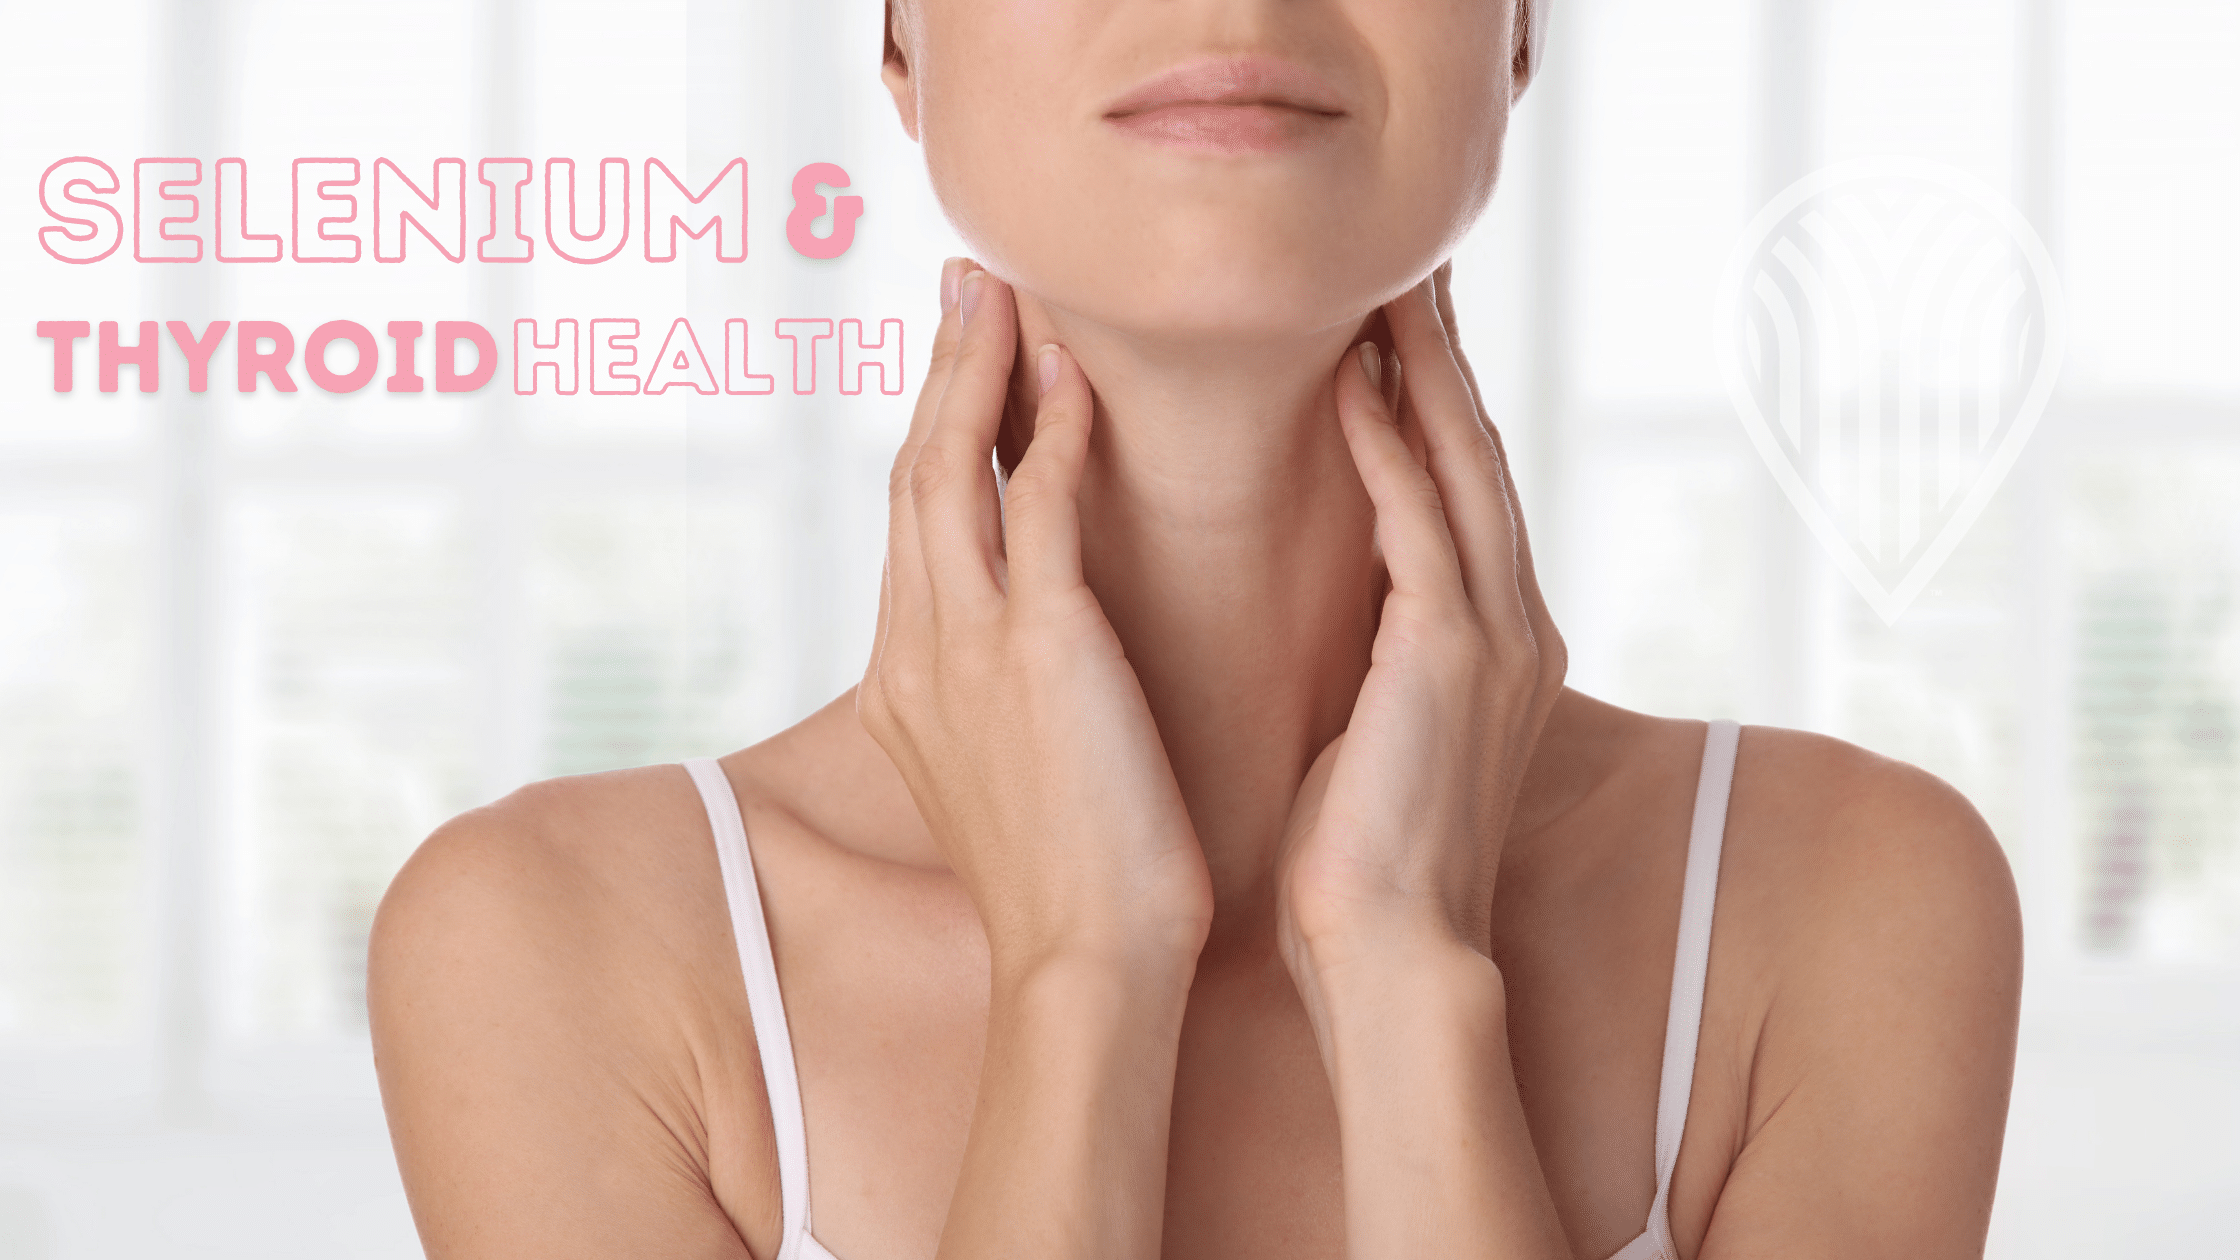 Selenium & Thyroid Health